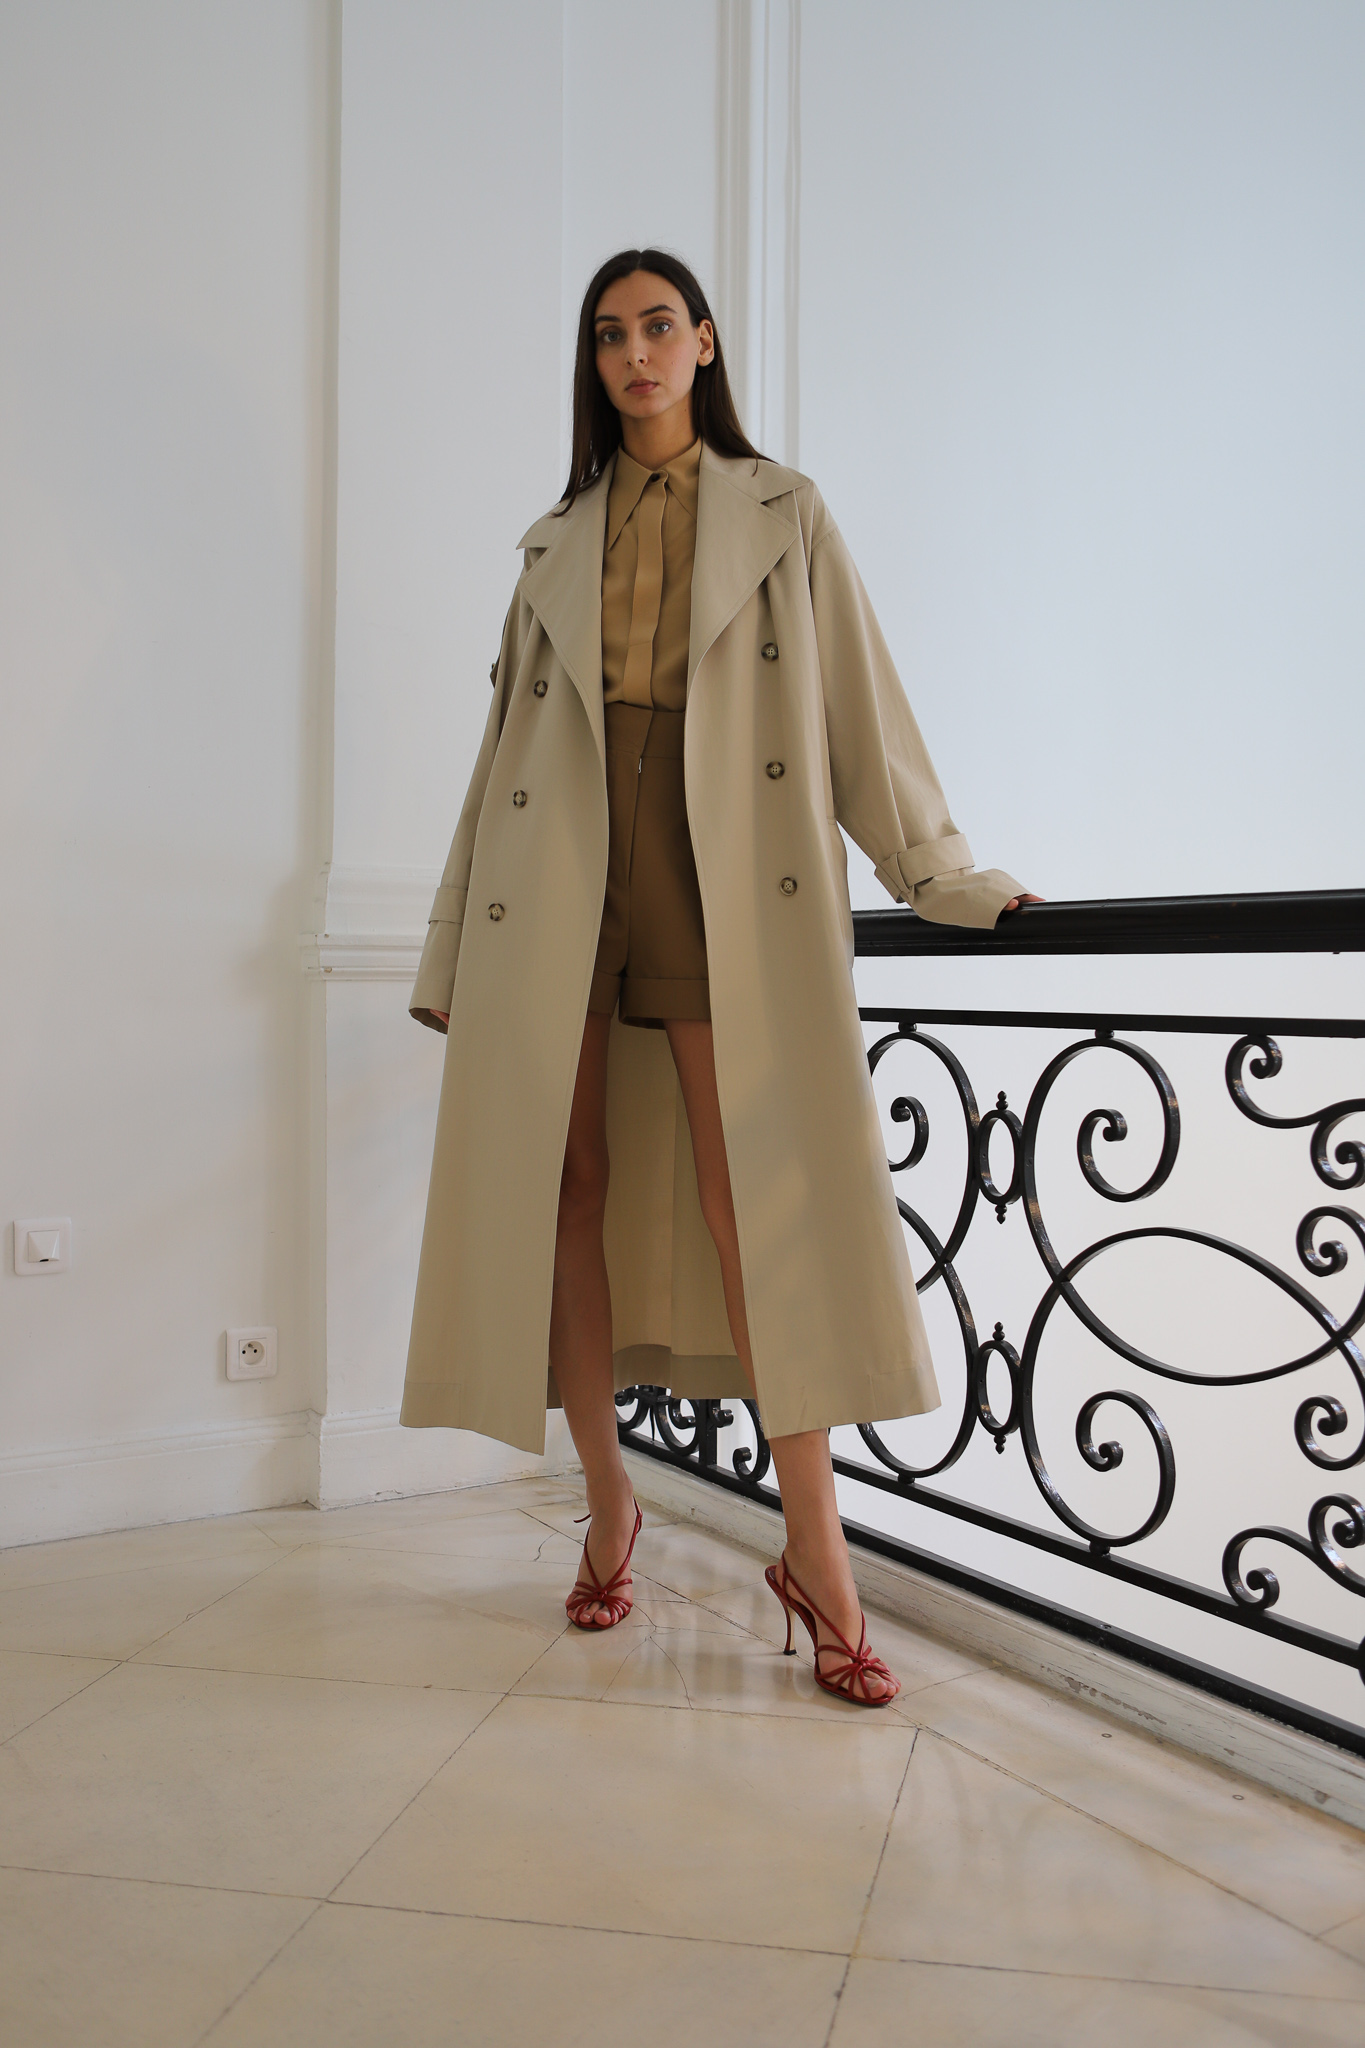 Victor Beckham Oversized Trench Coat Collared Shirt High Waisted Shorts in Brown Spring 20 RTW